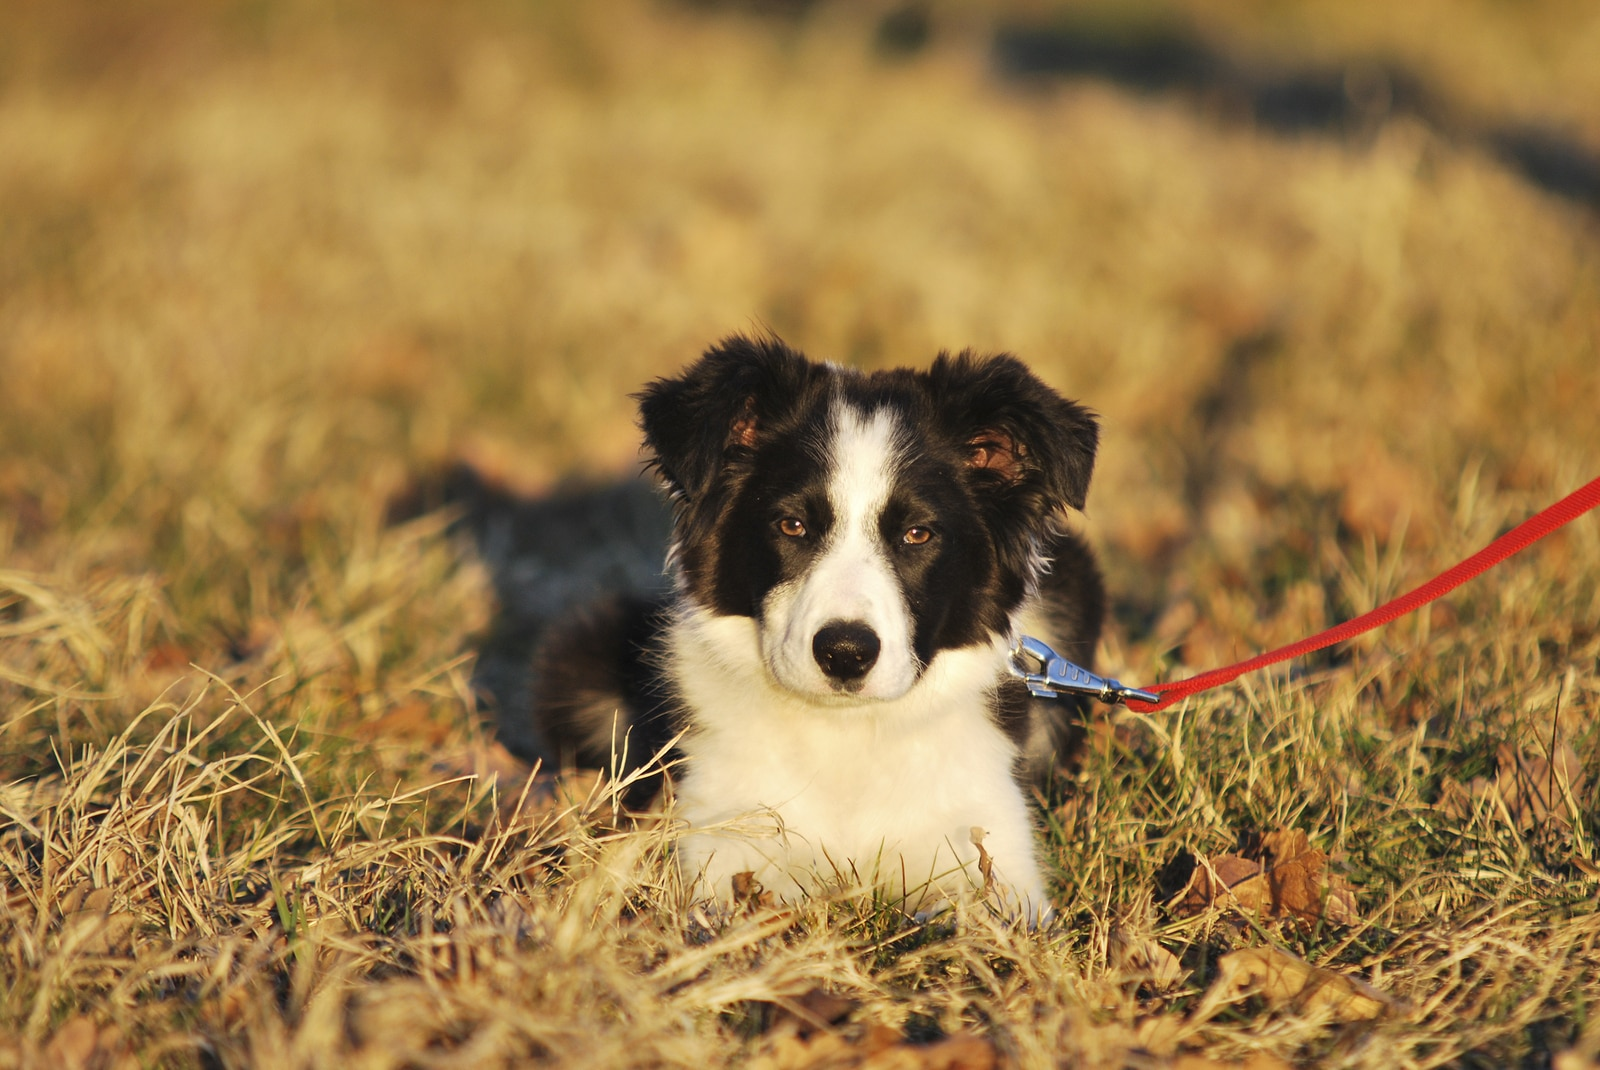 Black and white border collie on red leash lays in a field.